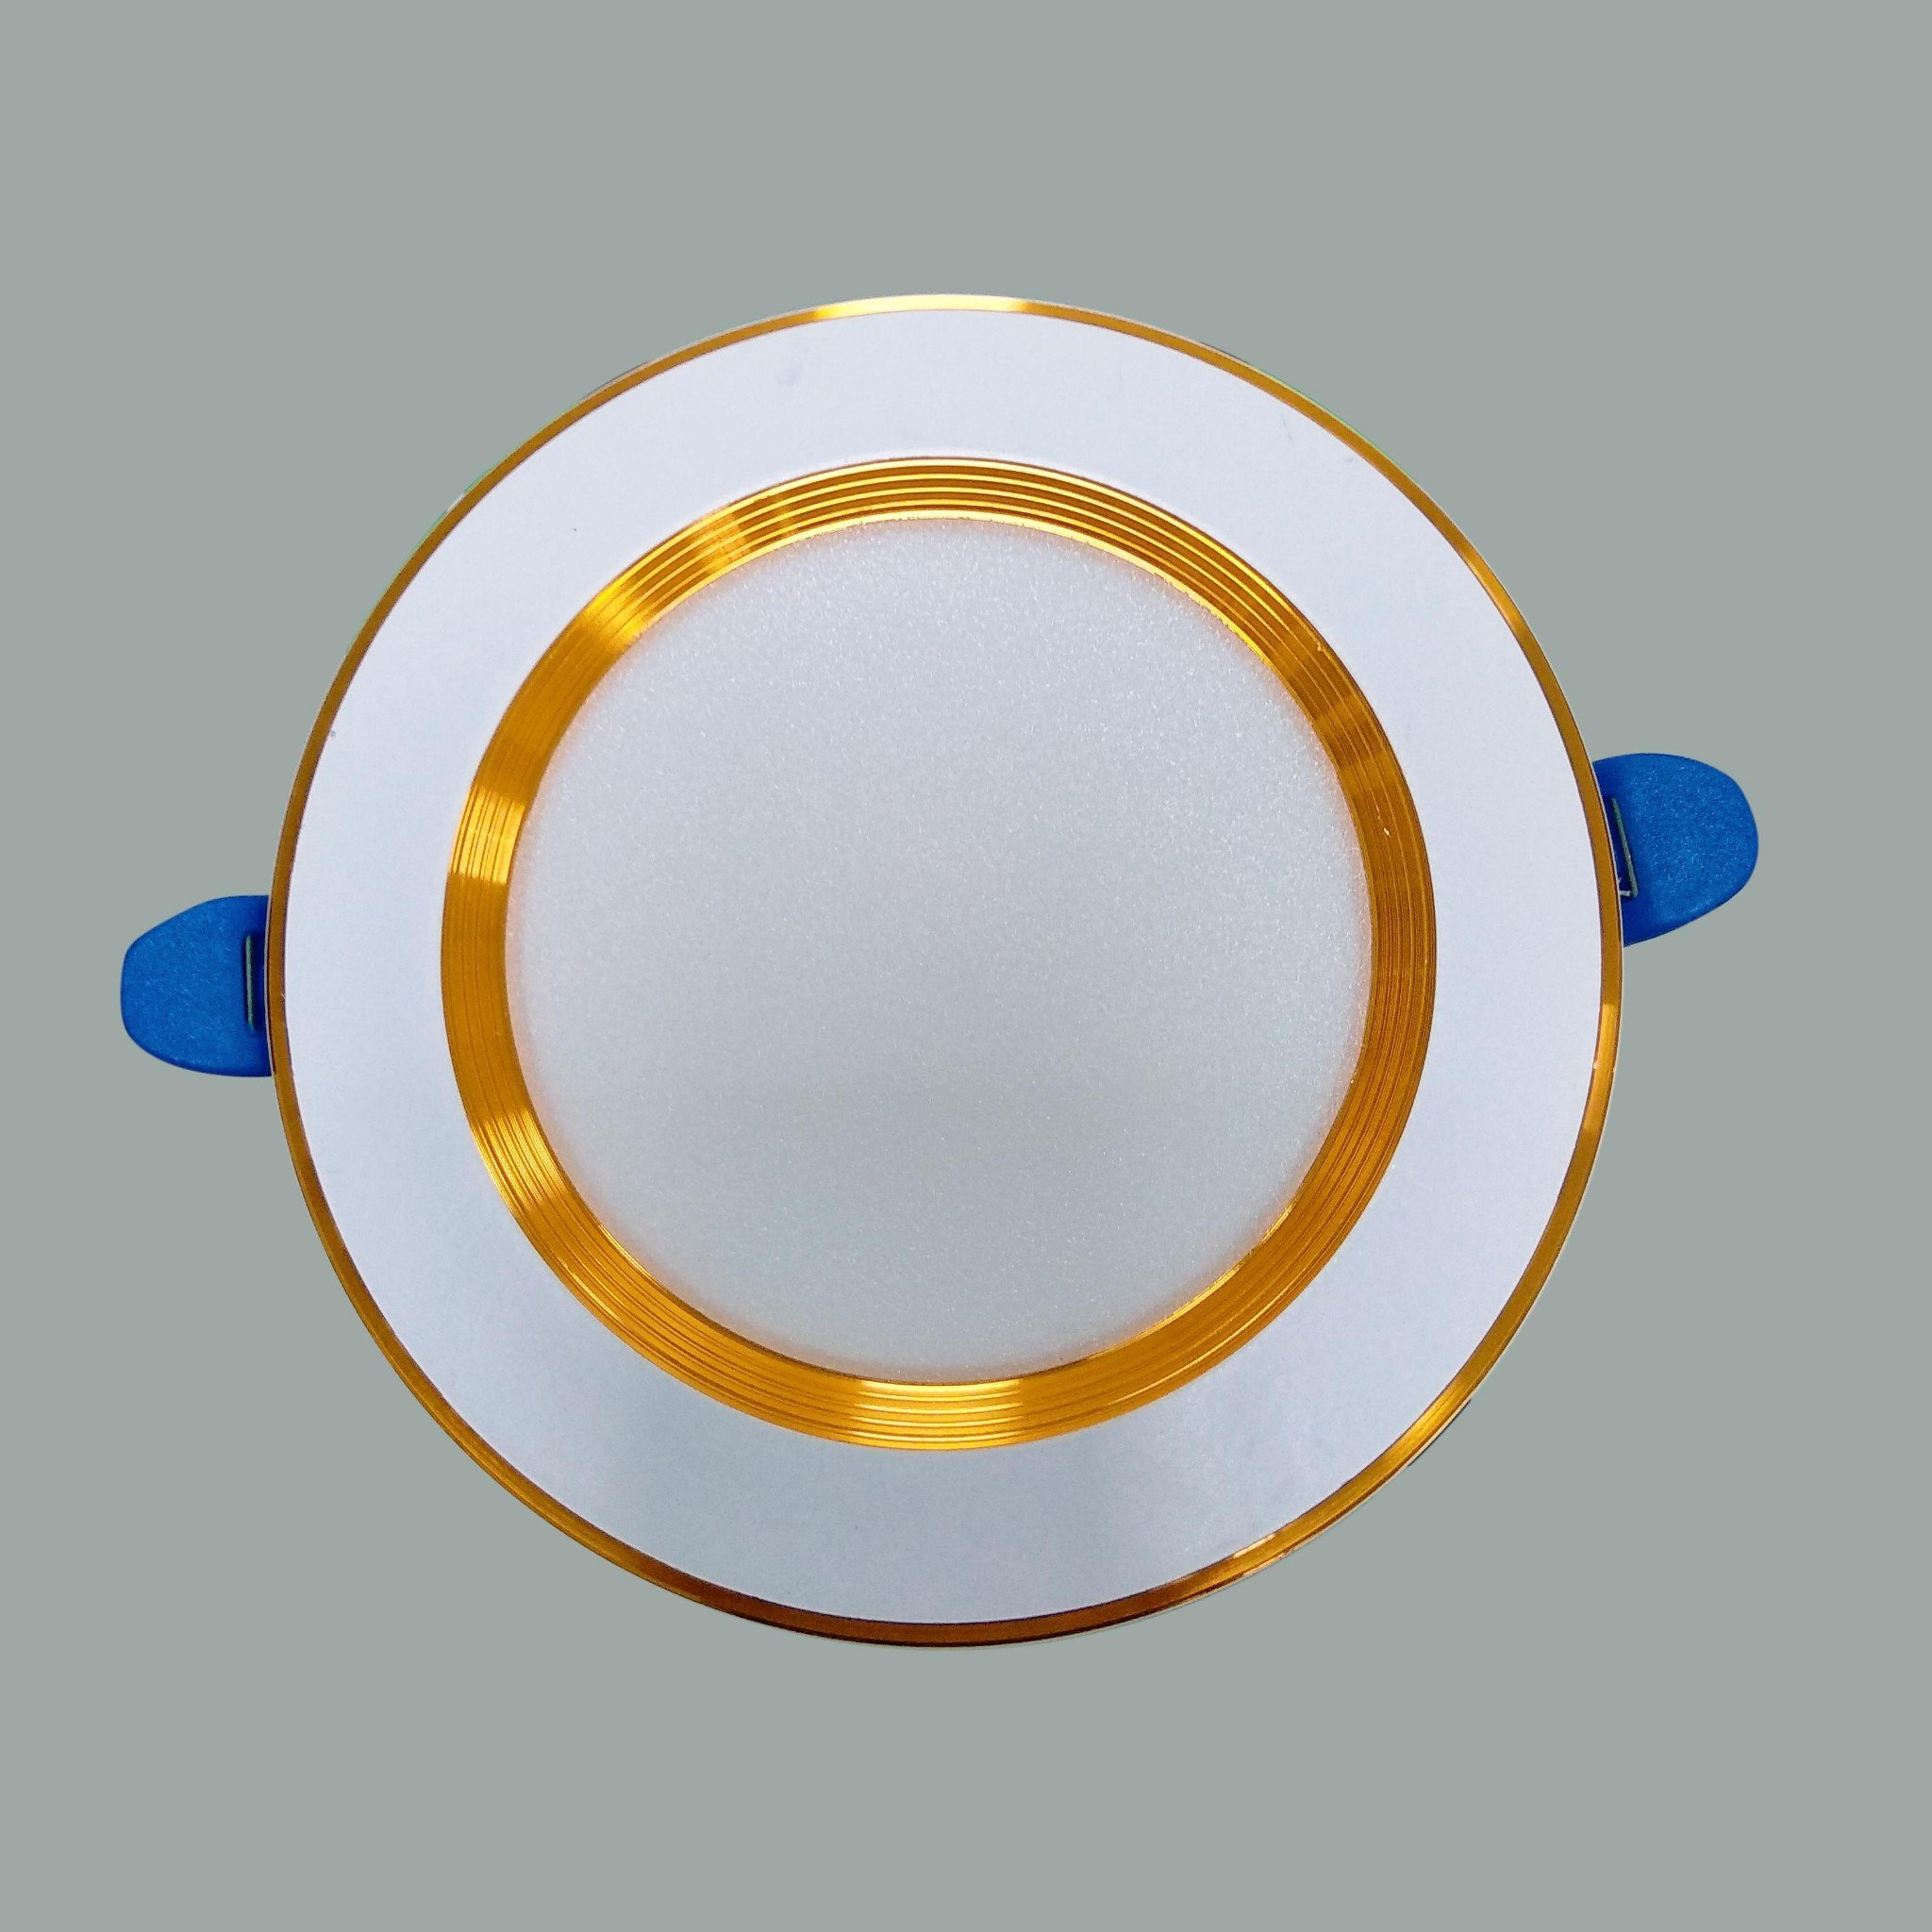 /products/den-led-downlight-vien-vang-doi-mau-d04v-7w